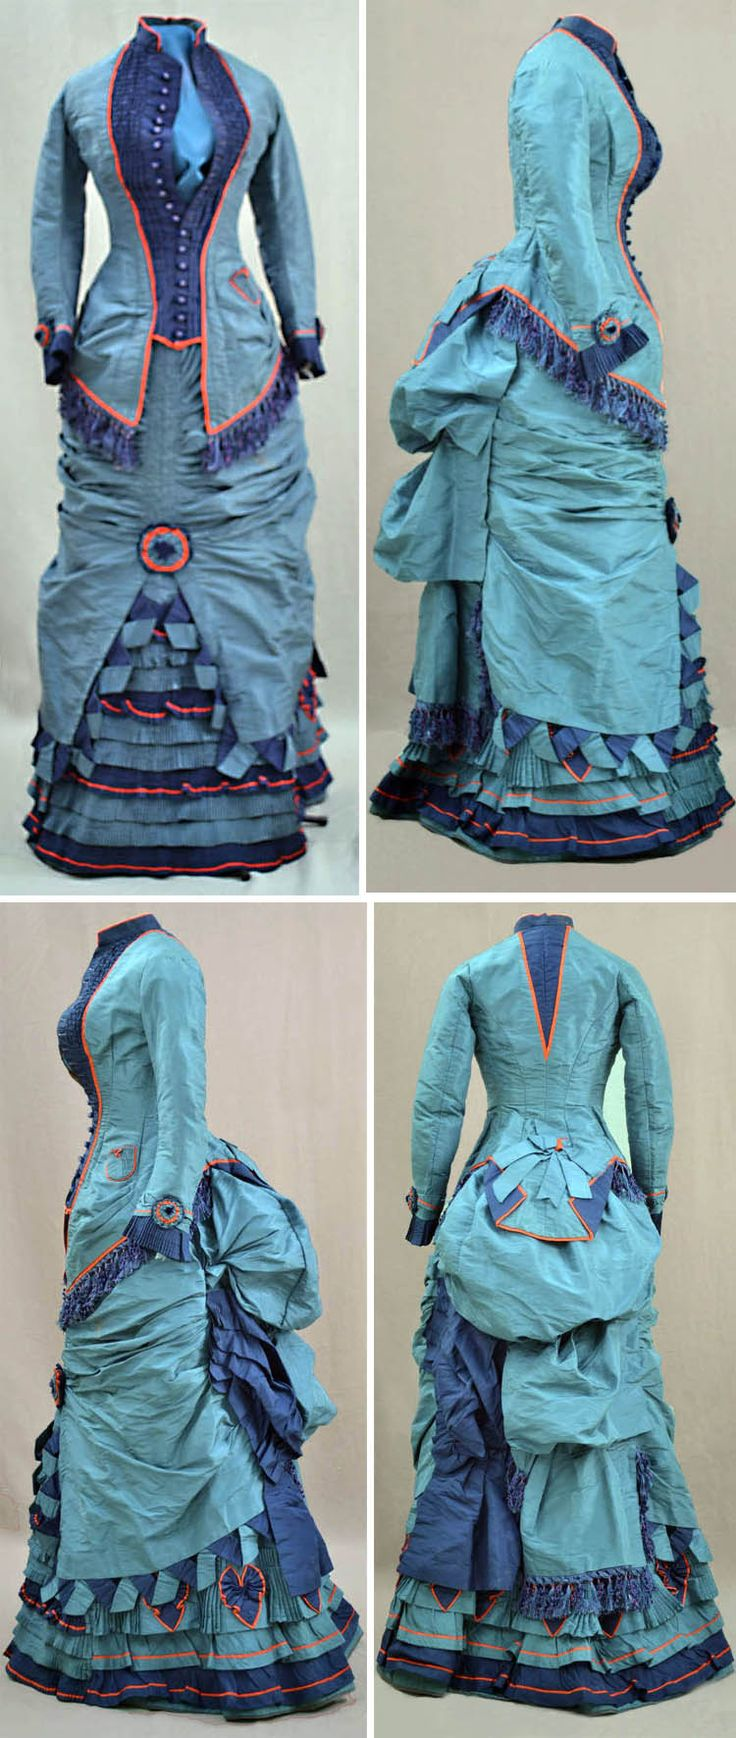 Two-piece dress, 1870. Pale blue silk. Bodice has button-down front with tiny dark blue crocheted buttons. Longer in back  pleated at side hips. Pleated pocket on side. Bustle skirt with draping and shirring. Slit up front to show ruffles and pleating of alternating shades of blue. Bright red silk trim around jacket, pocket, collar, sleeve edges,  ruffles. Fabric rosettes. Blue silk fringe at bodice  bustle. Towson Univ. Dep't of Theater Arts